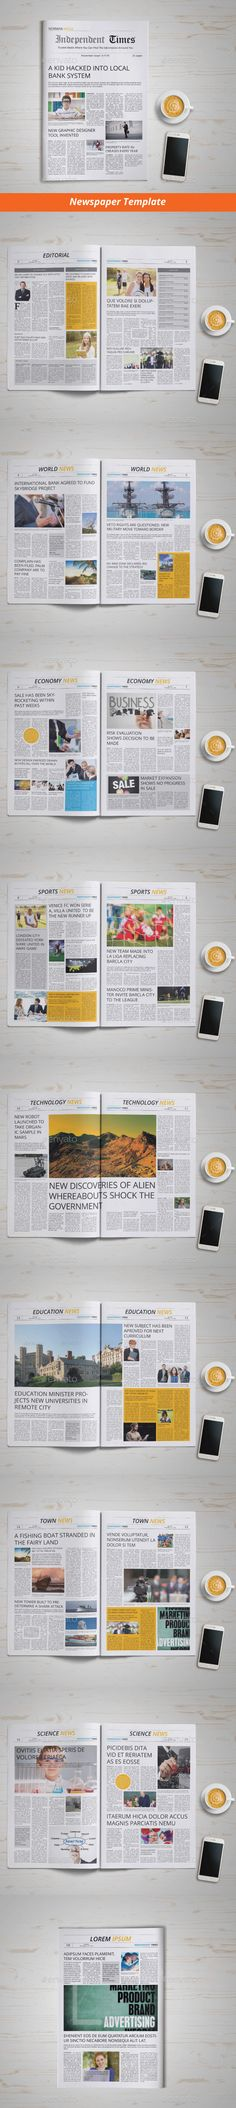 Daily Newspaper  Print Templates And Newspaper